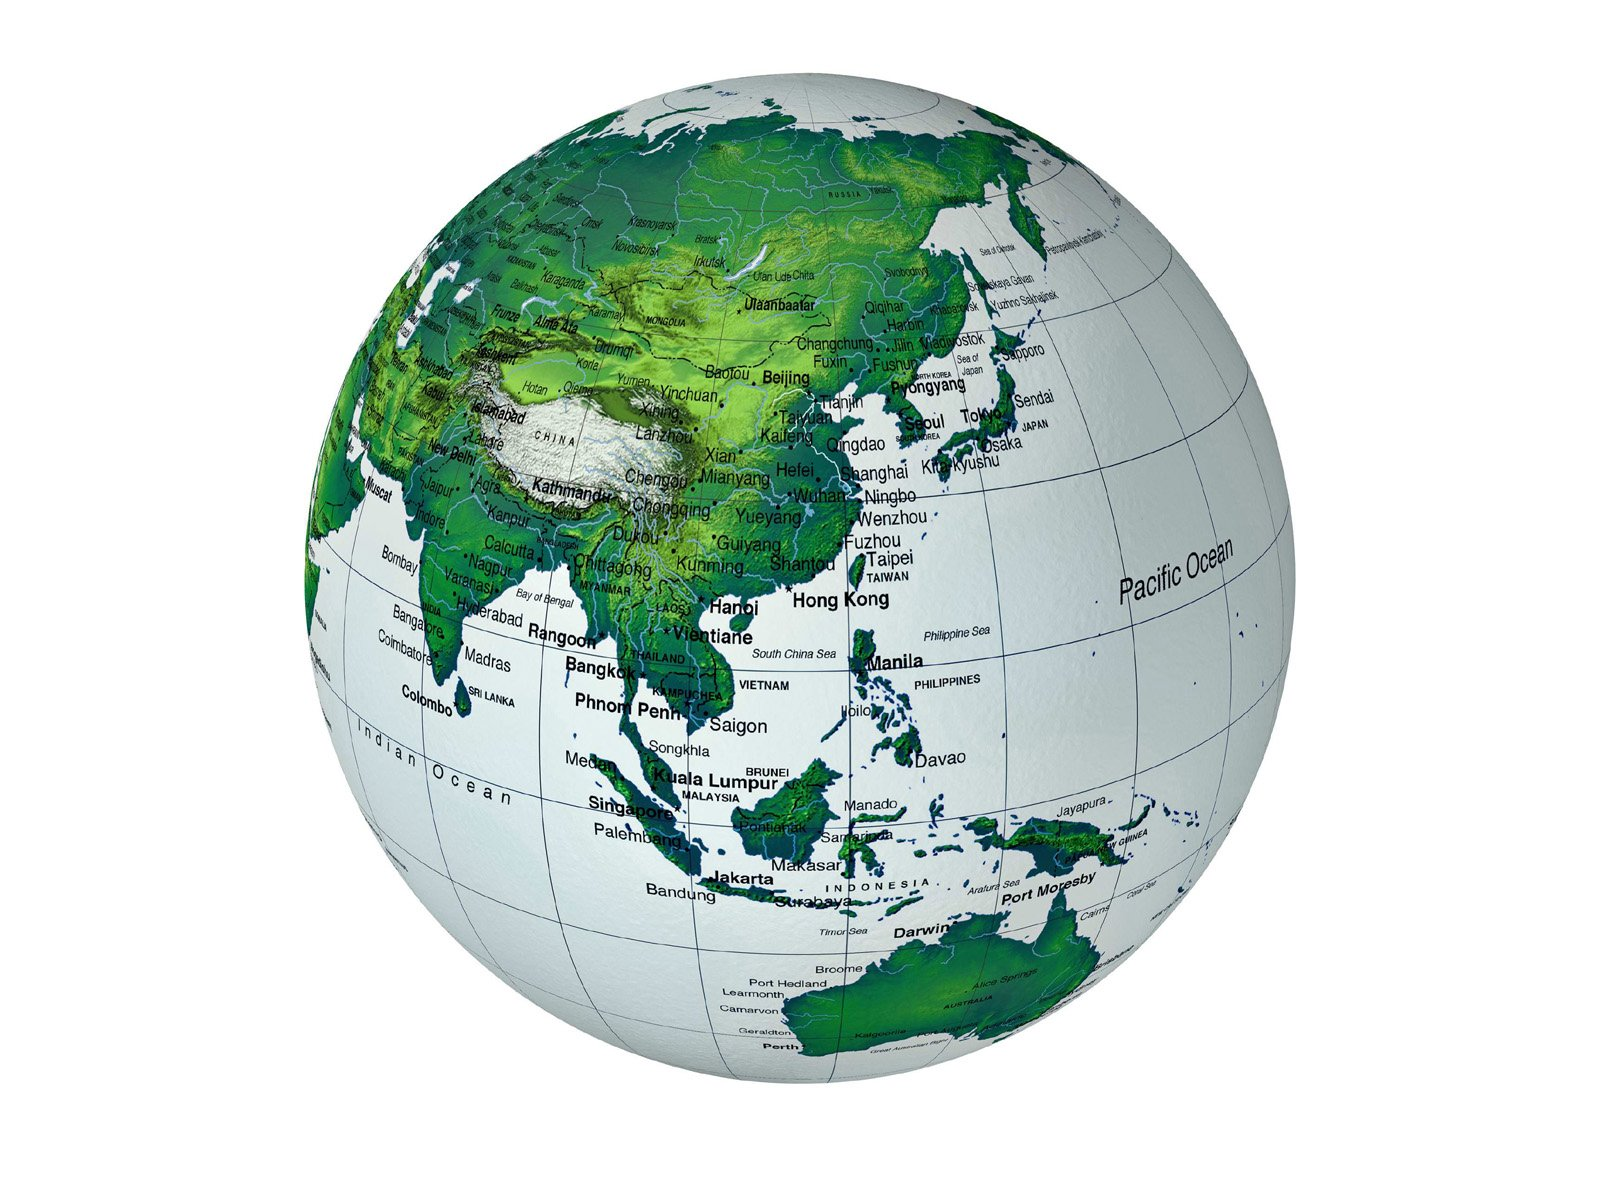 free download globe map wallpapers 5921 1600 1 funcheapsfcom 1600x1200 for your desktop mobile tablet explore 49 wallpaper world maps for sale wallpaper world maps world maps wallpaper wallpaper maps old world globe map wallpapers 5921 1600